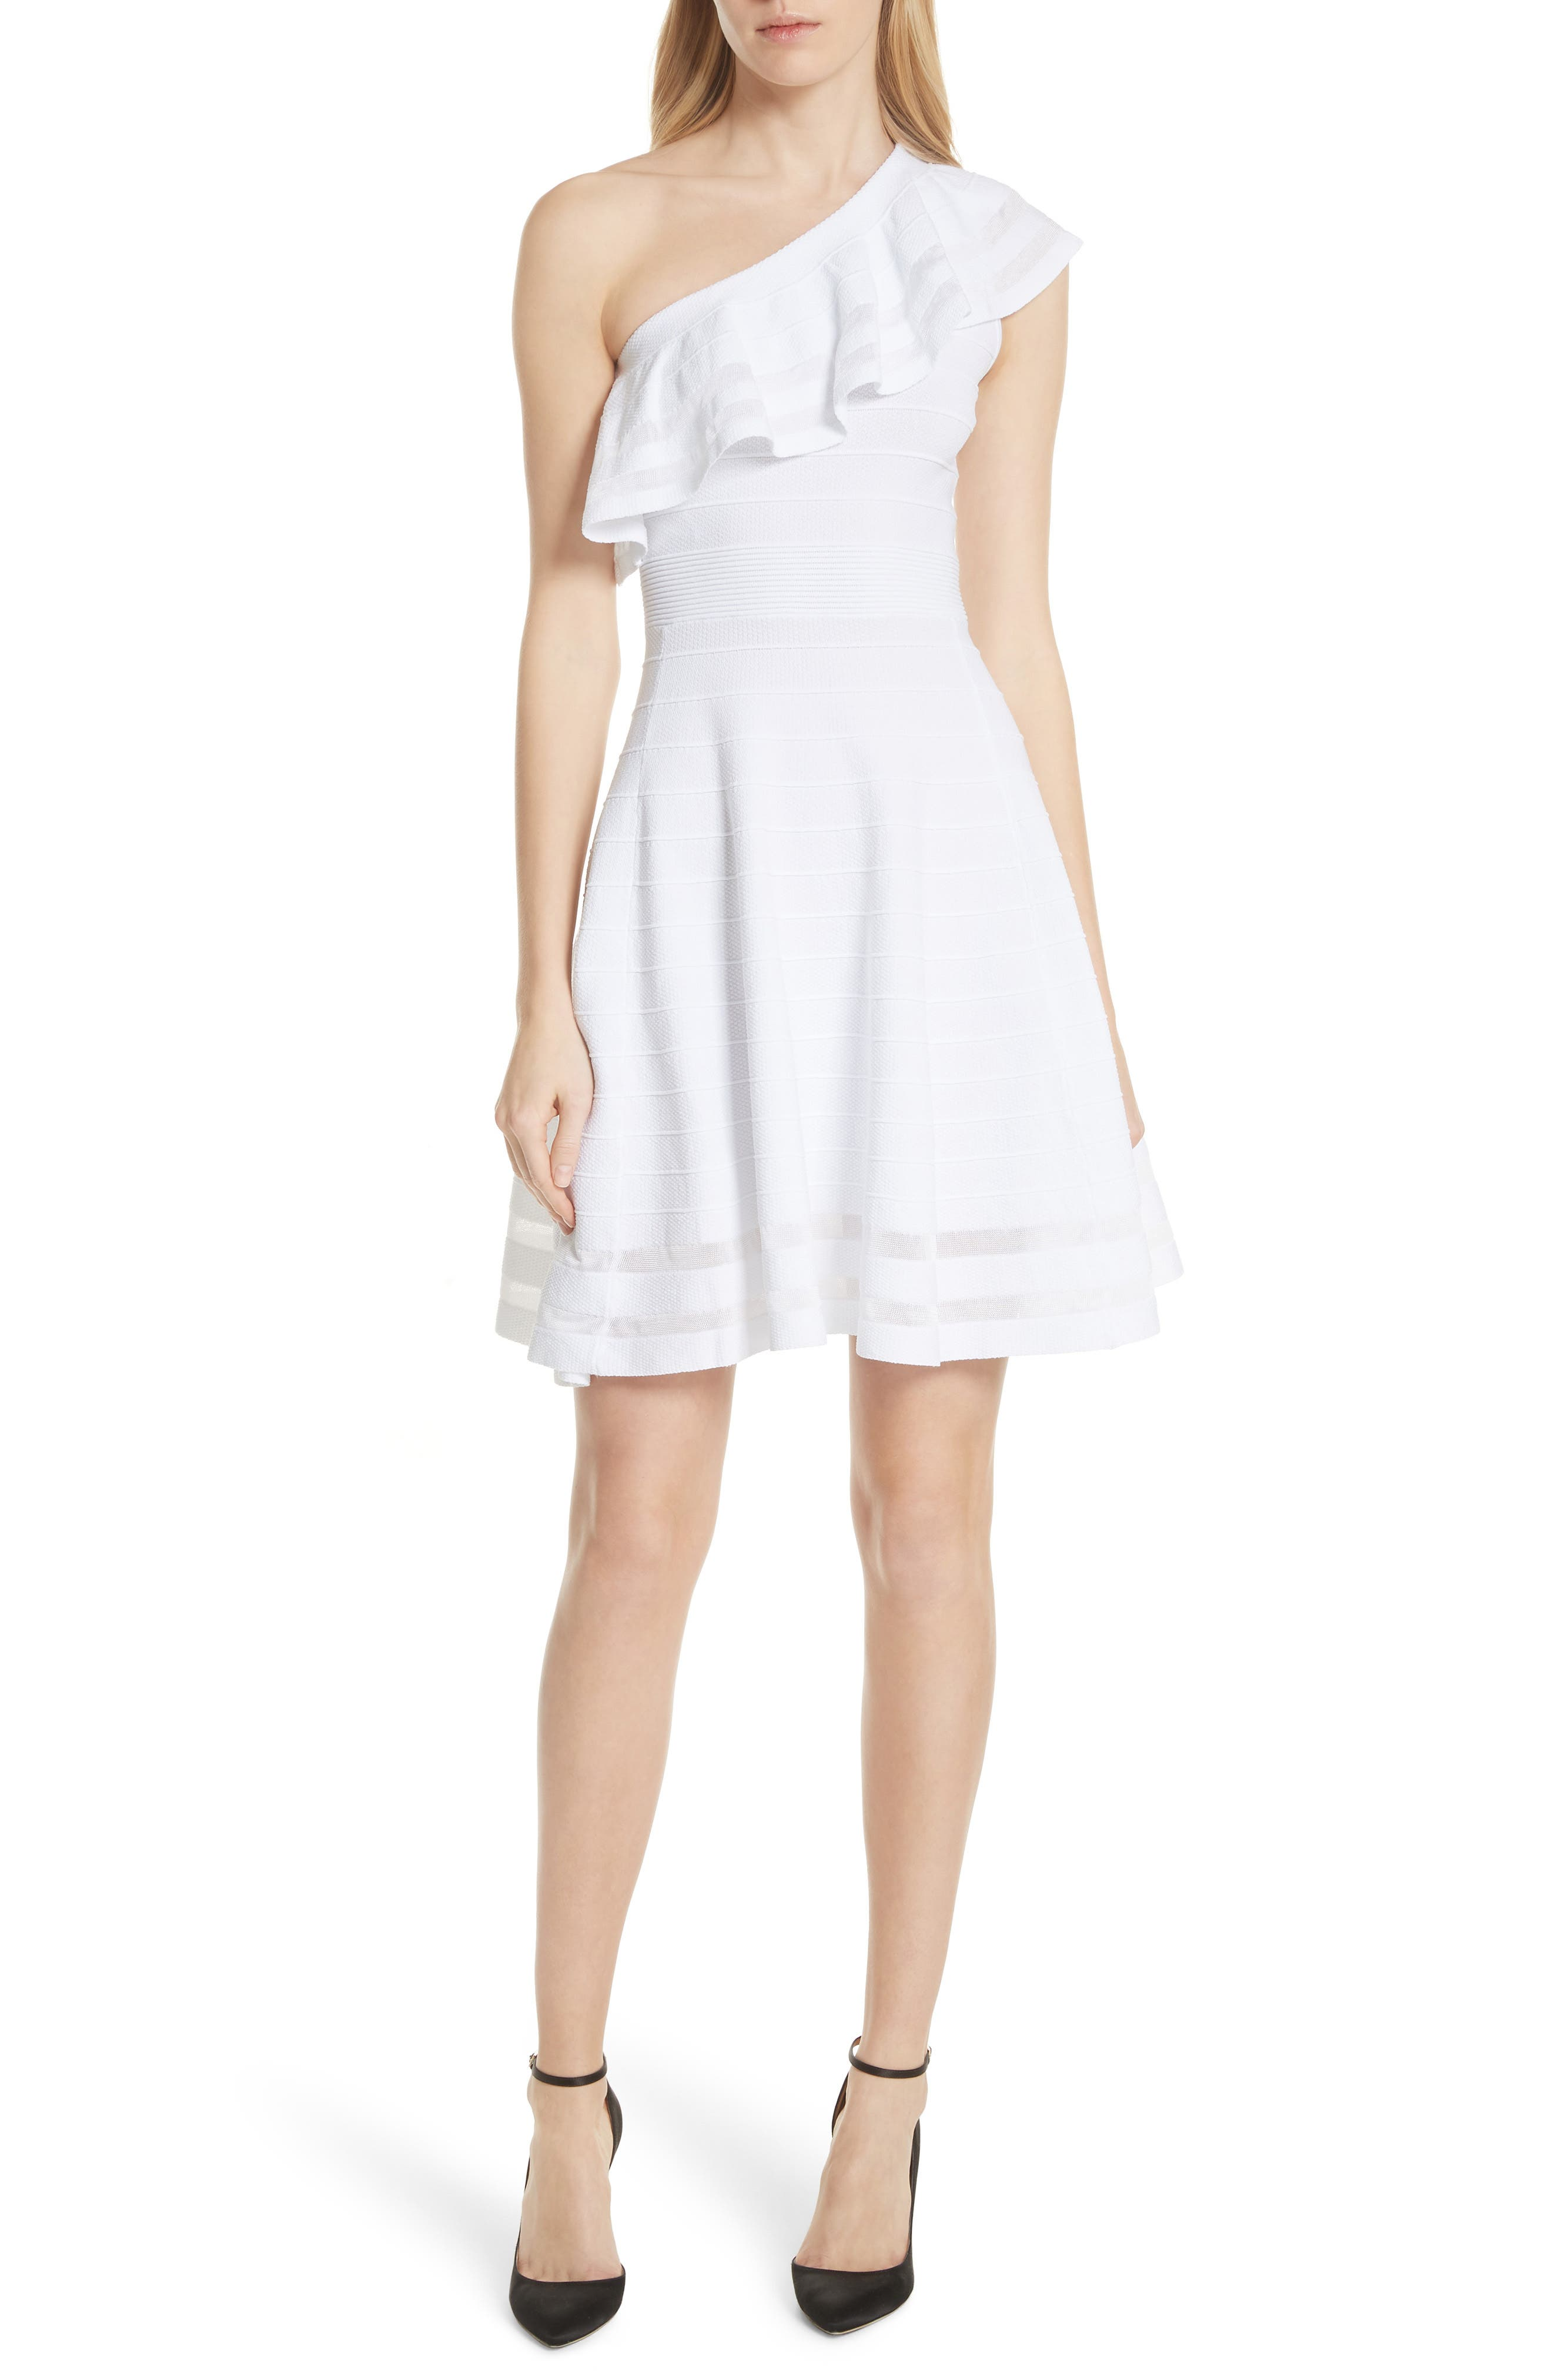 Streena Knit Skater Dress,                         Main,                         color, White